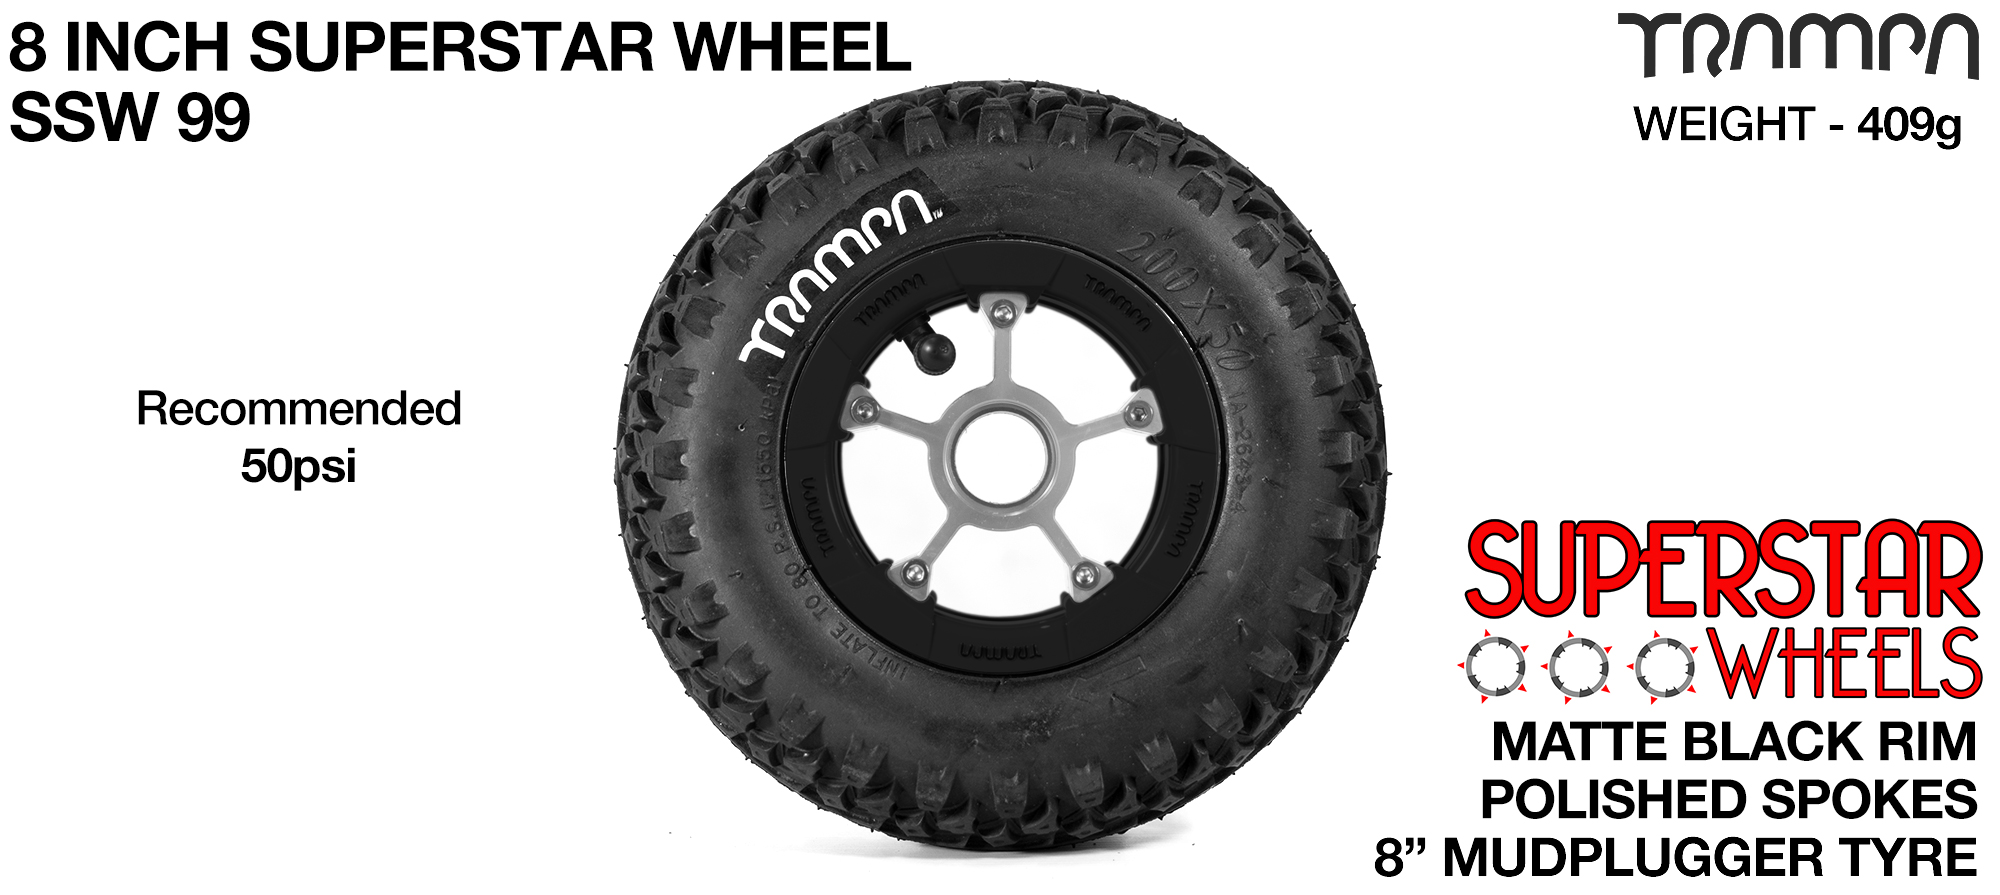 Superstar wheel -  Black Rim with Polished Spokes and Trampa Deep Tyres - 8 inch wheel